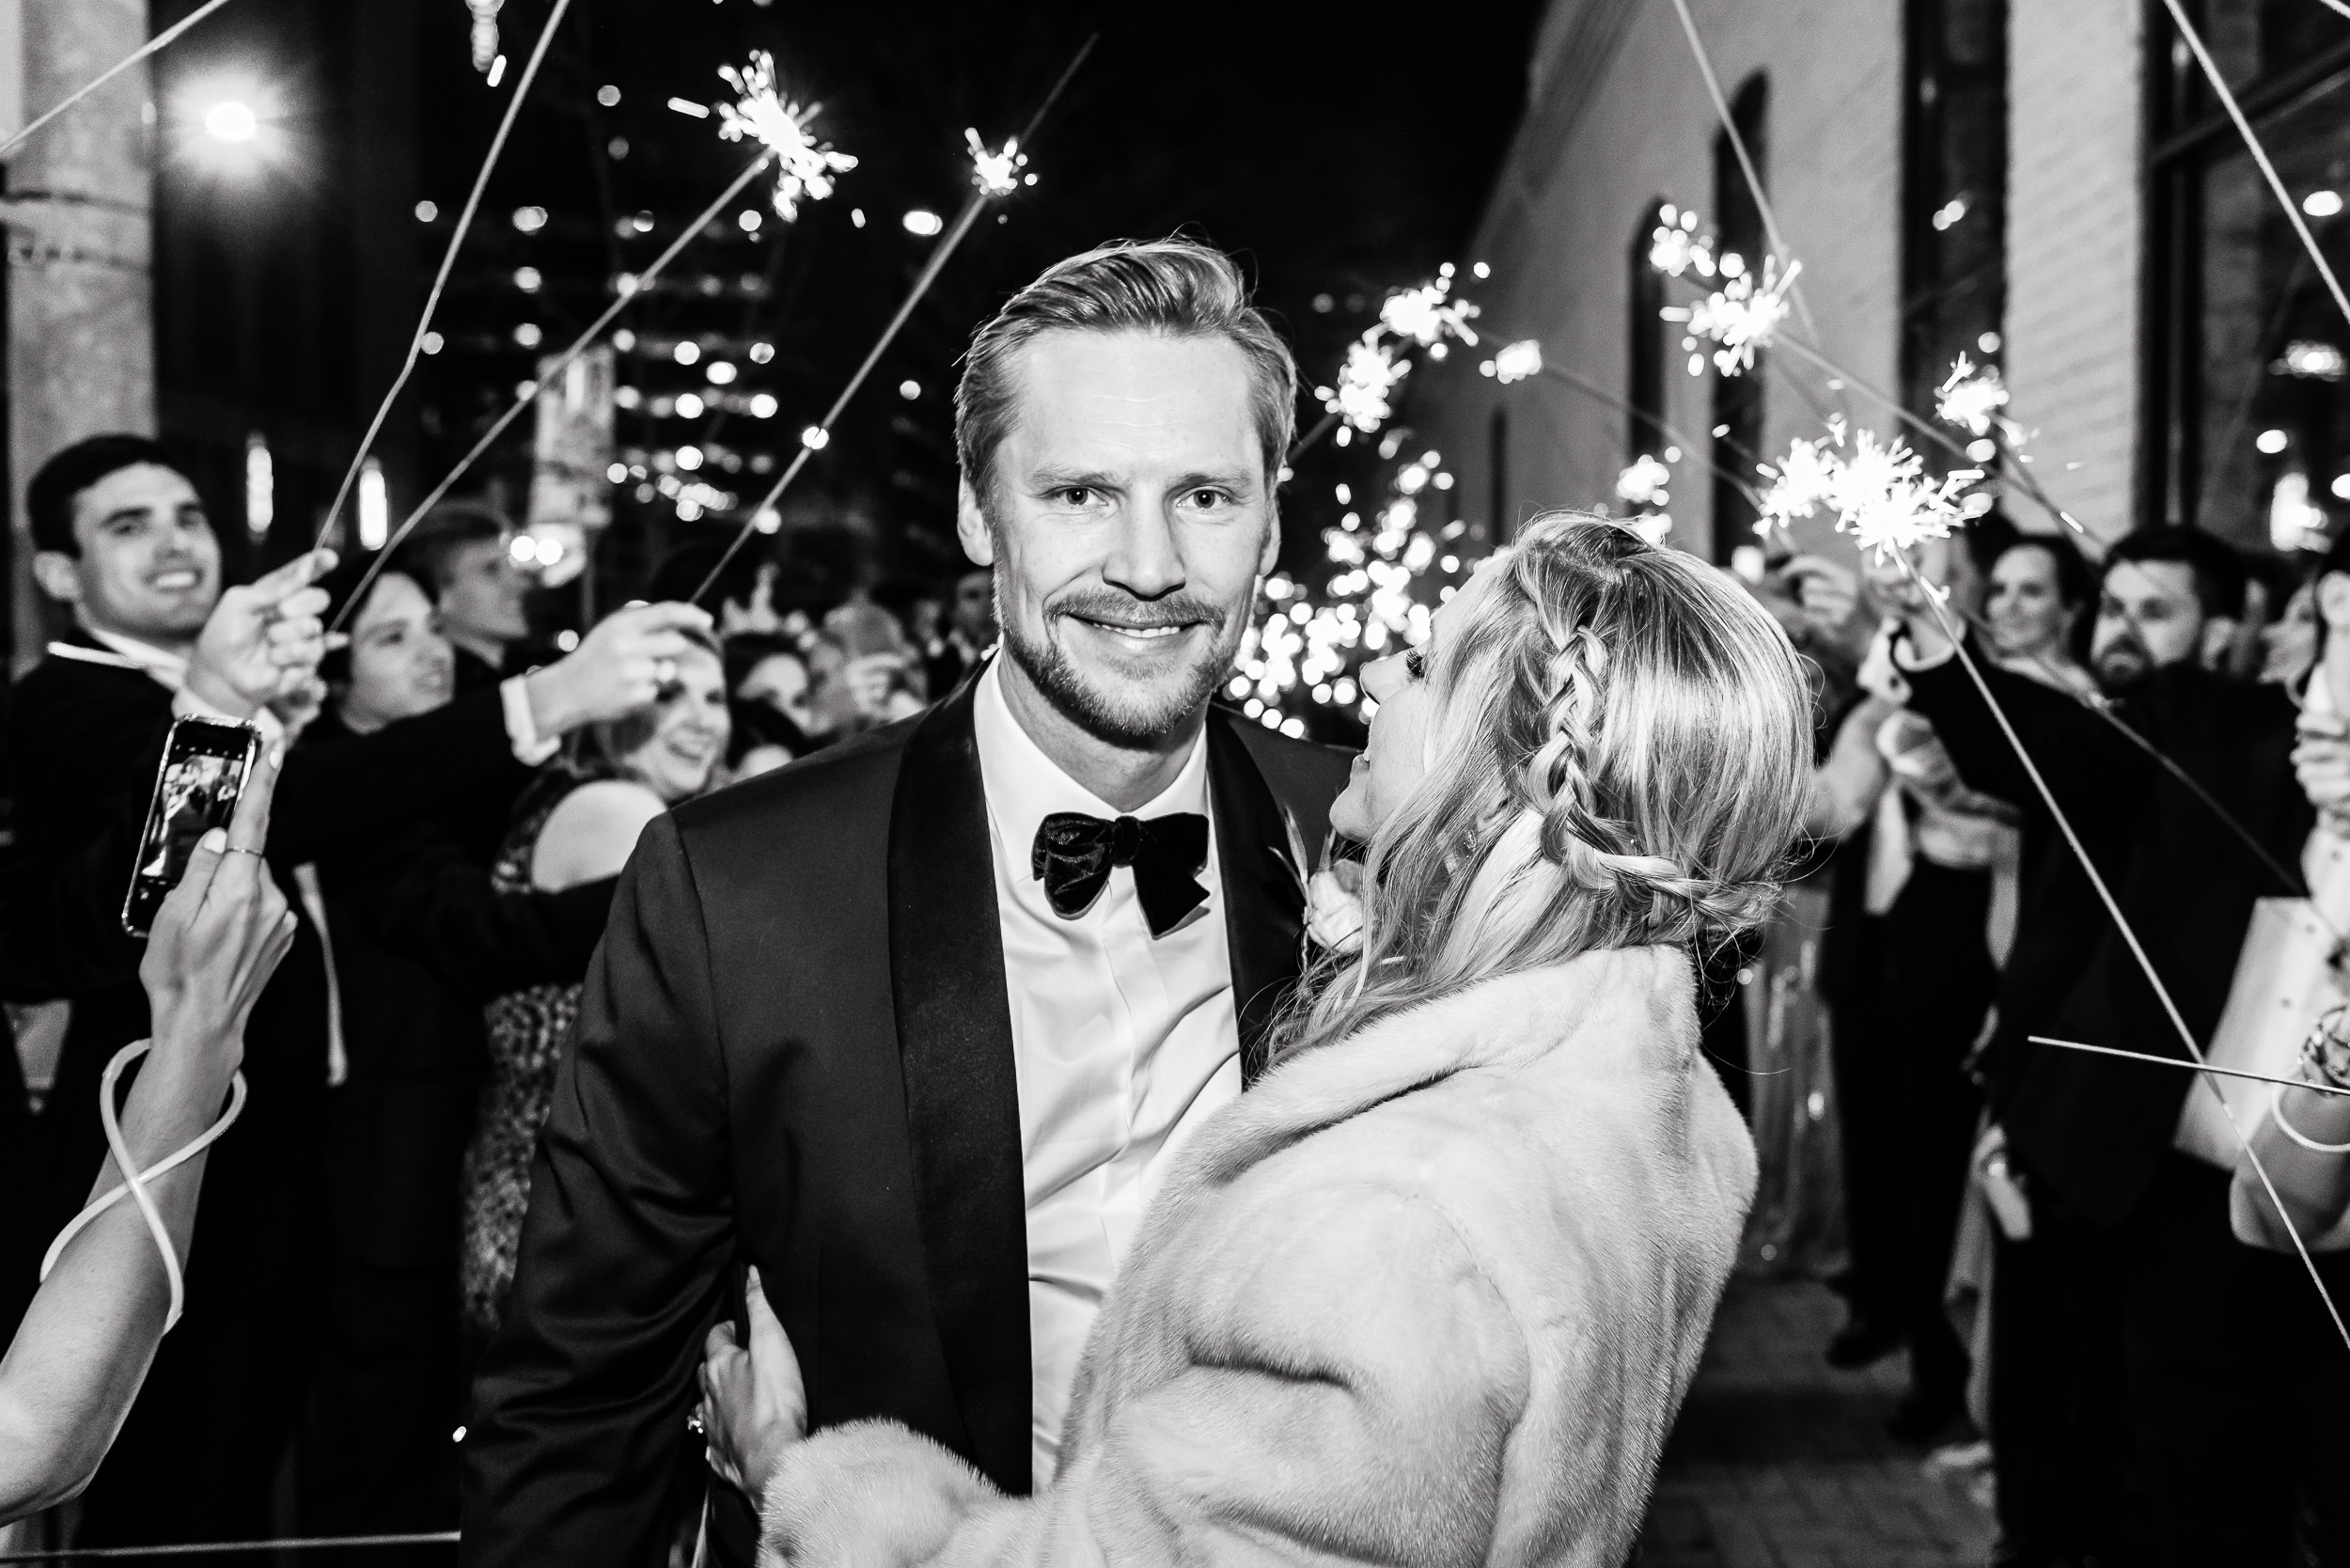 Austin-wedding-photographers-brazos-hall-downtown-exit-sparklers-sidewalk-fur-jacket-tuxedo